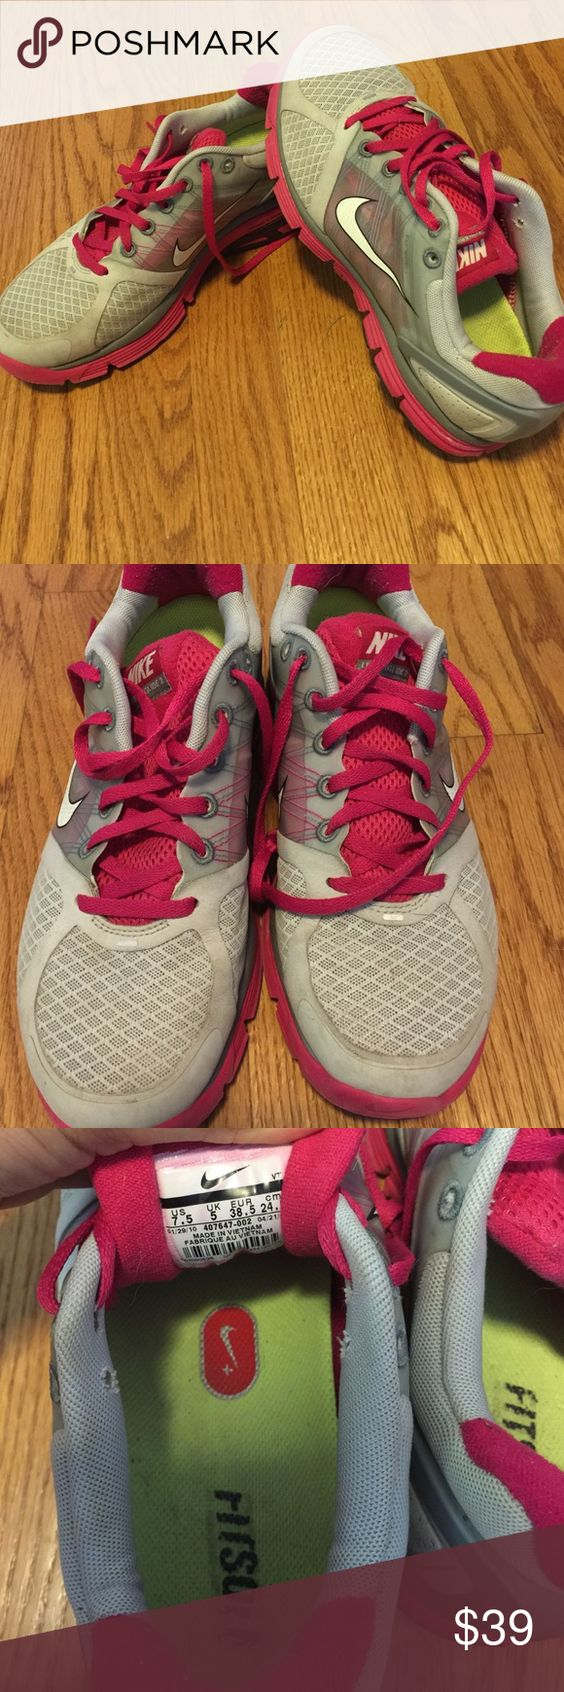 NIKE Lunarglide 2 Women's Nike Lunarglide 2 in size 7.5. In great condition! Nike Shoes Sneakers